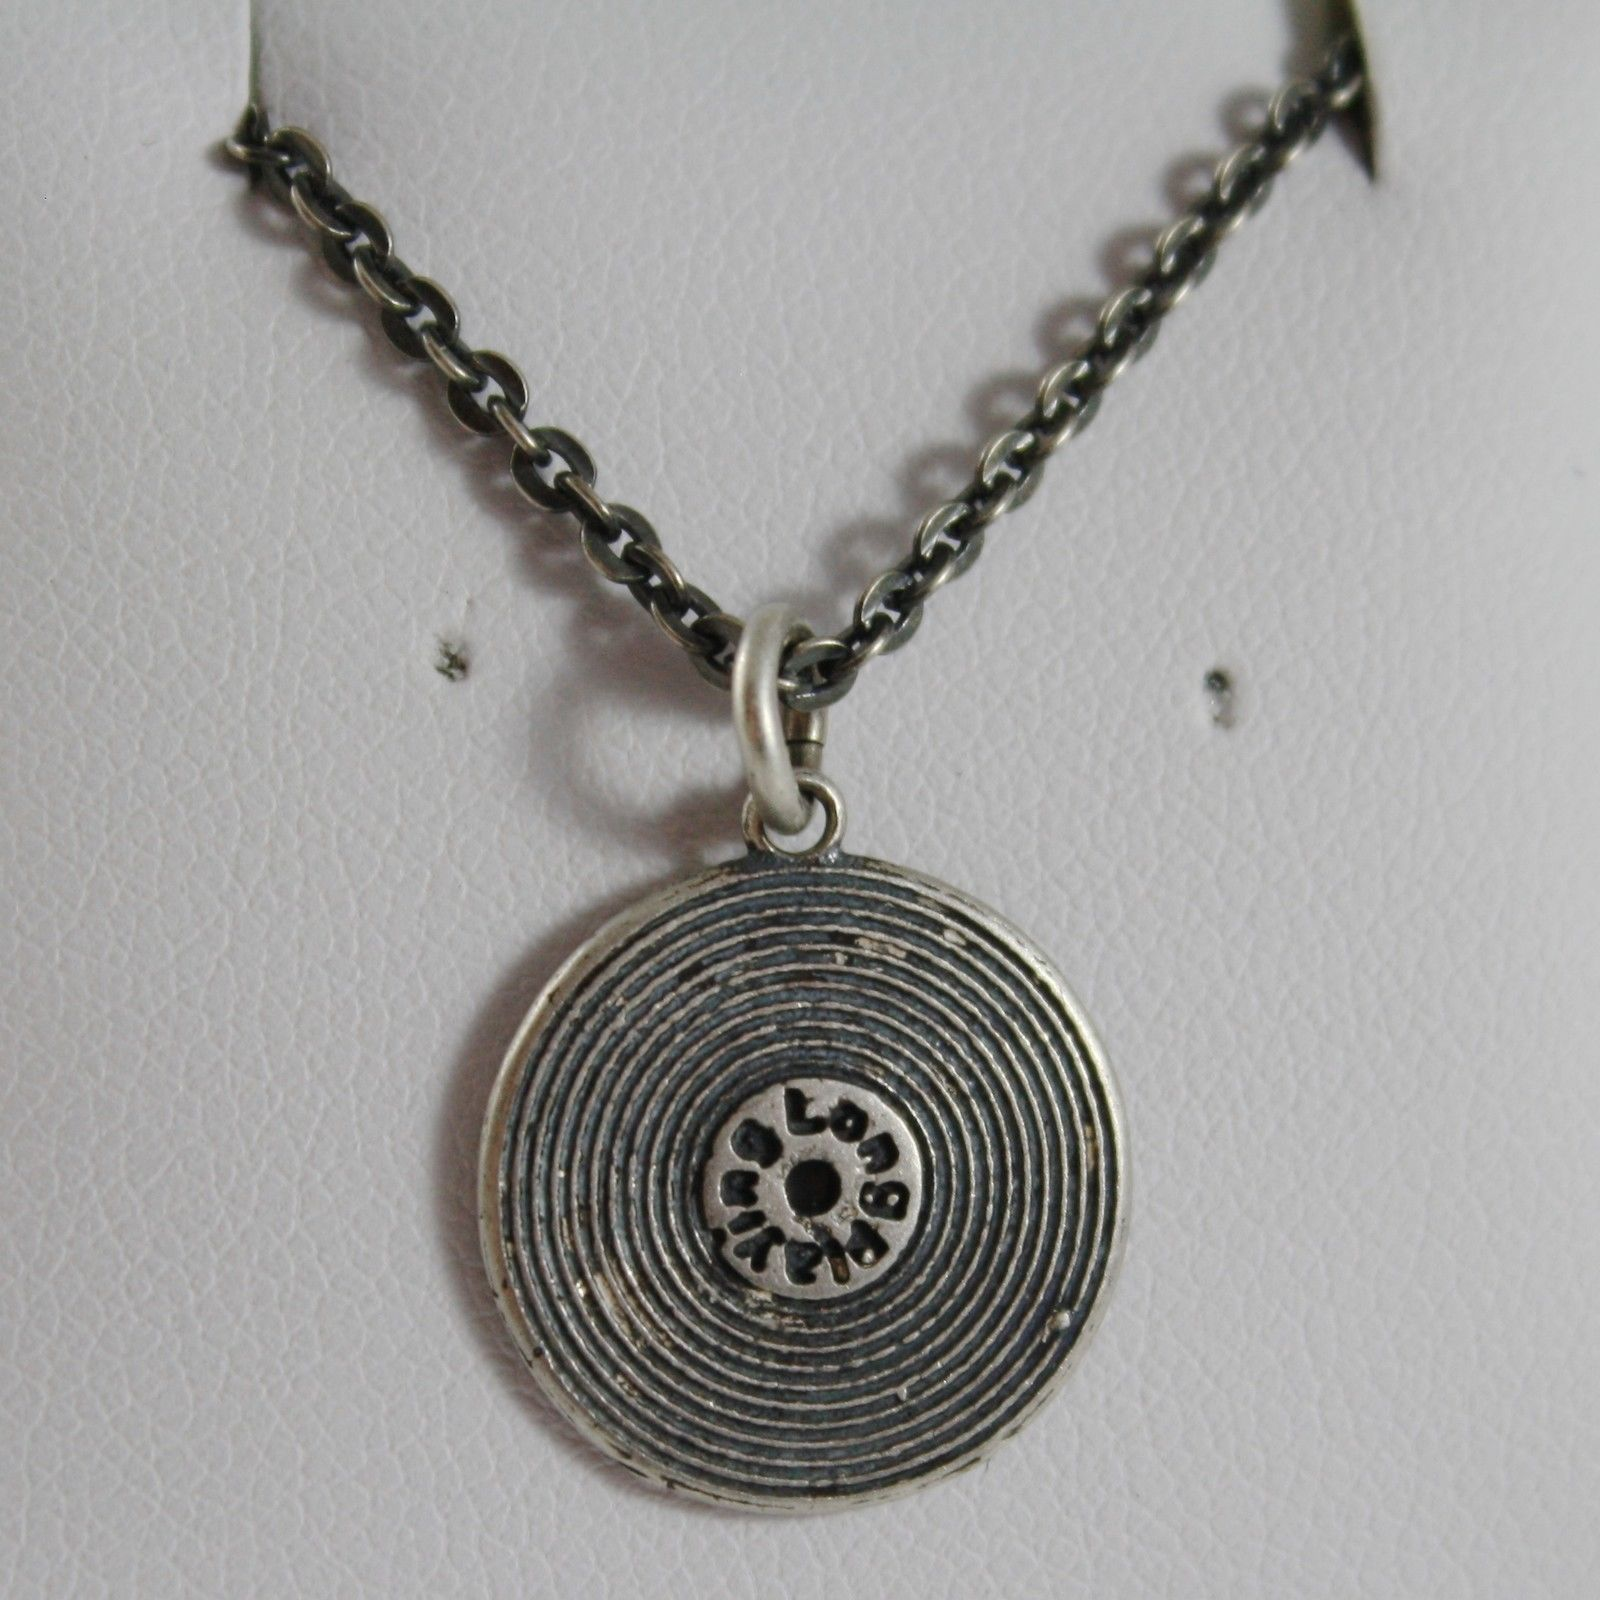 COLLANA IN ARGENTO 925 BRUNITO CON CIONDOLO A DISCO VINILE VINTAGE MADE IN ITALY